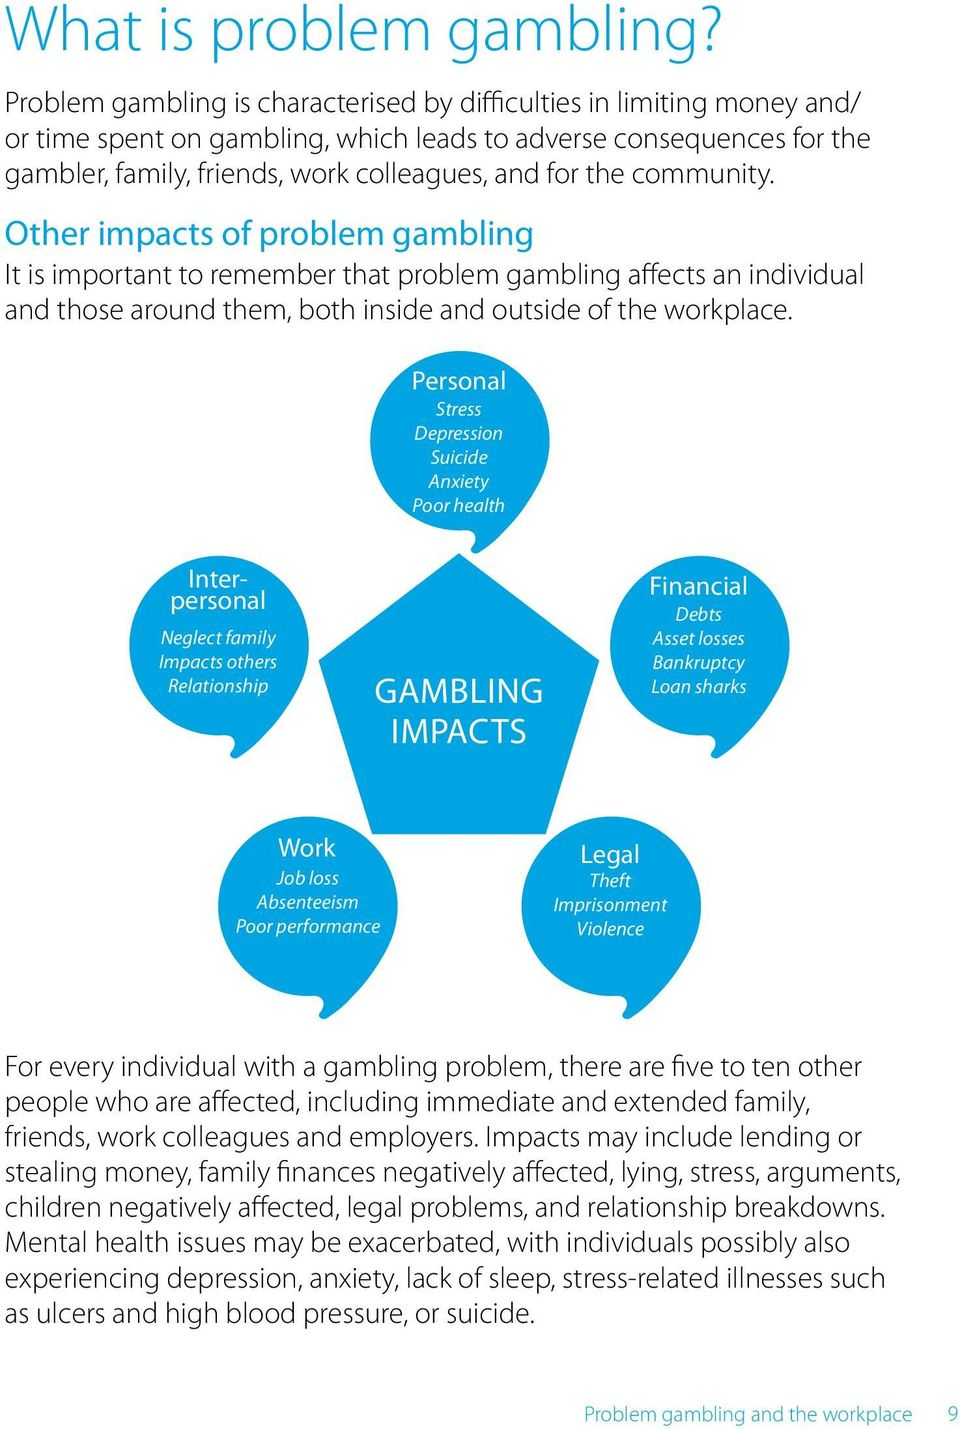 community. Other impacts of problem gambling It is important to remember that problem gambling affects an individual and those around them, both inside and outside of the workplace.